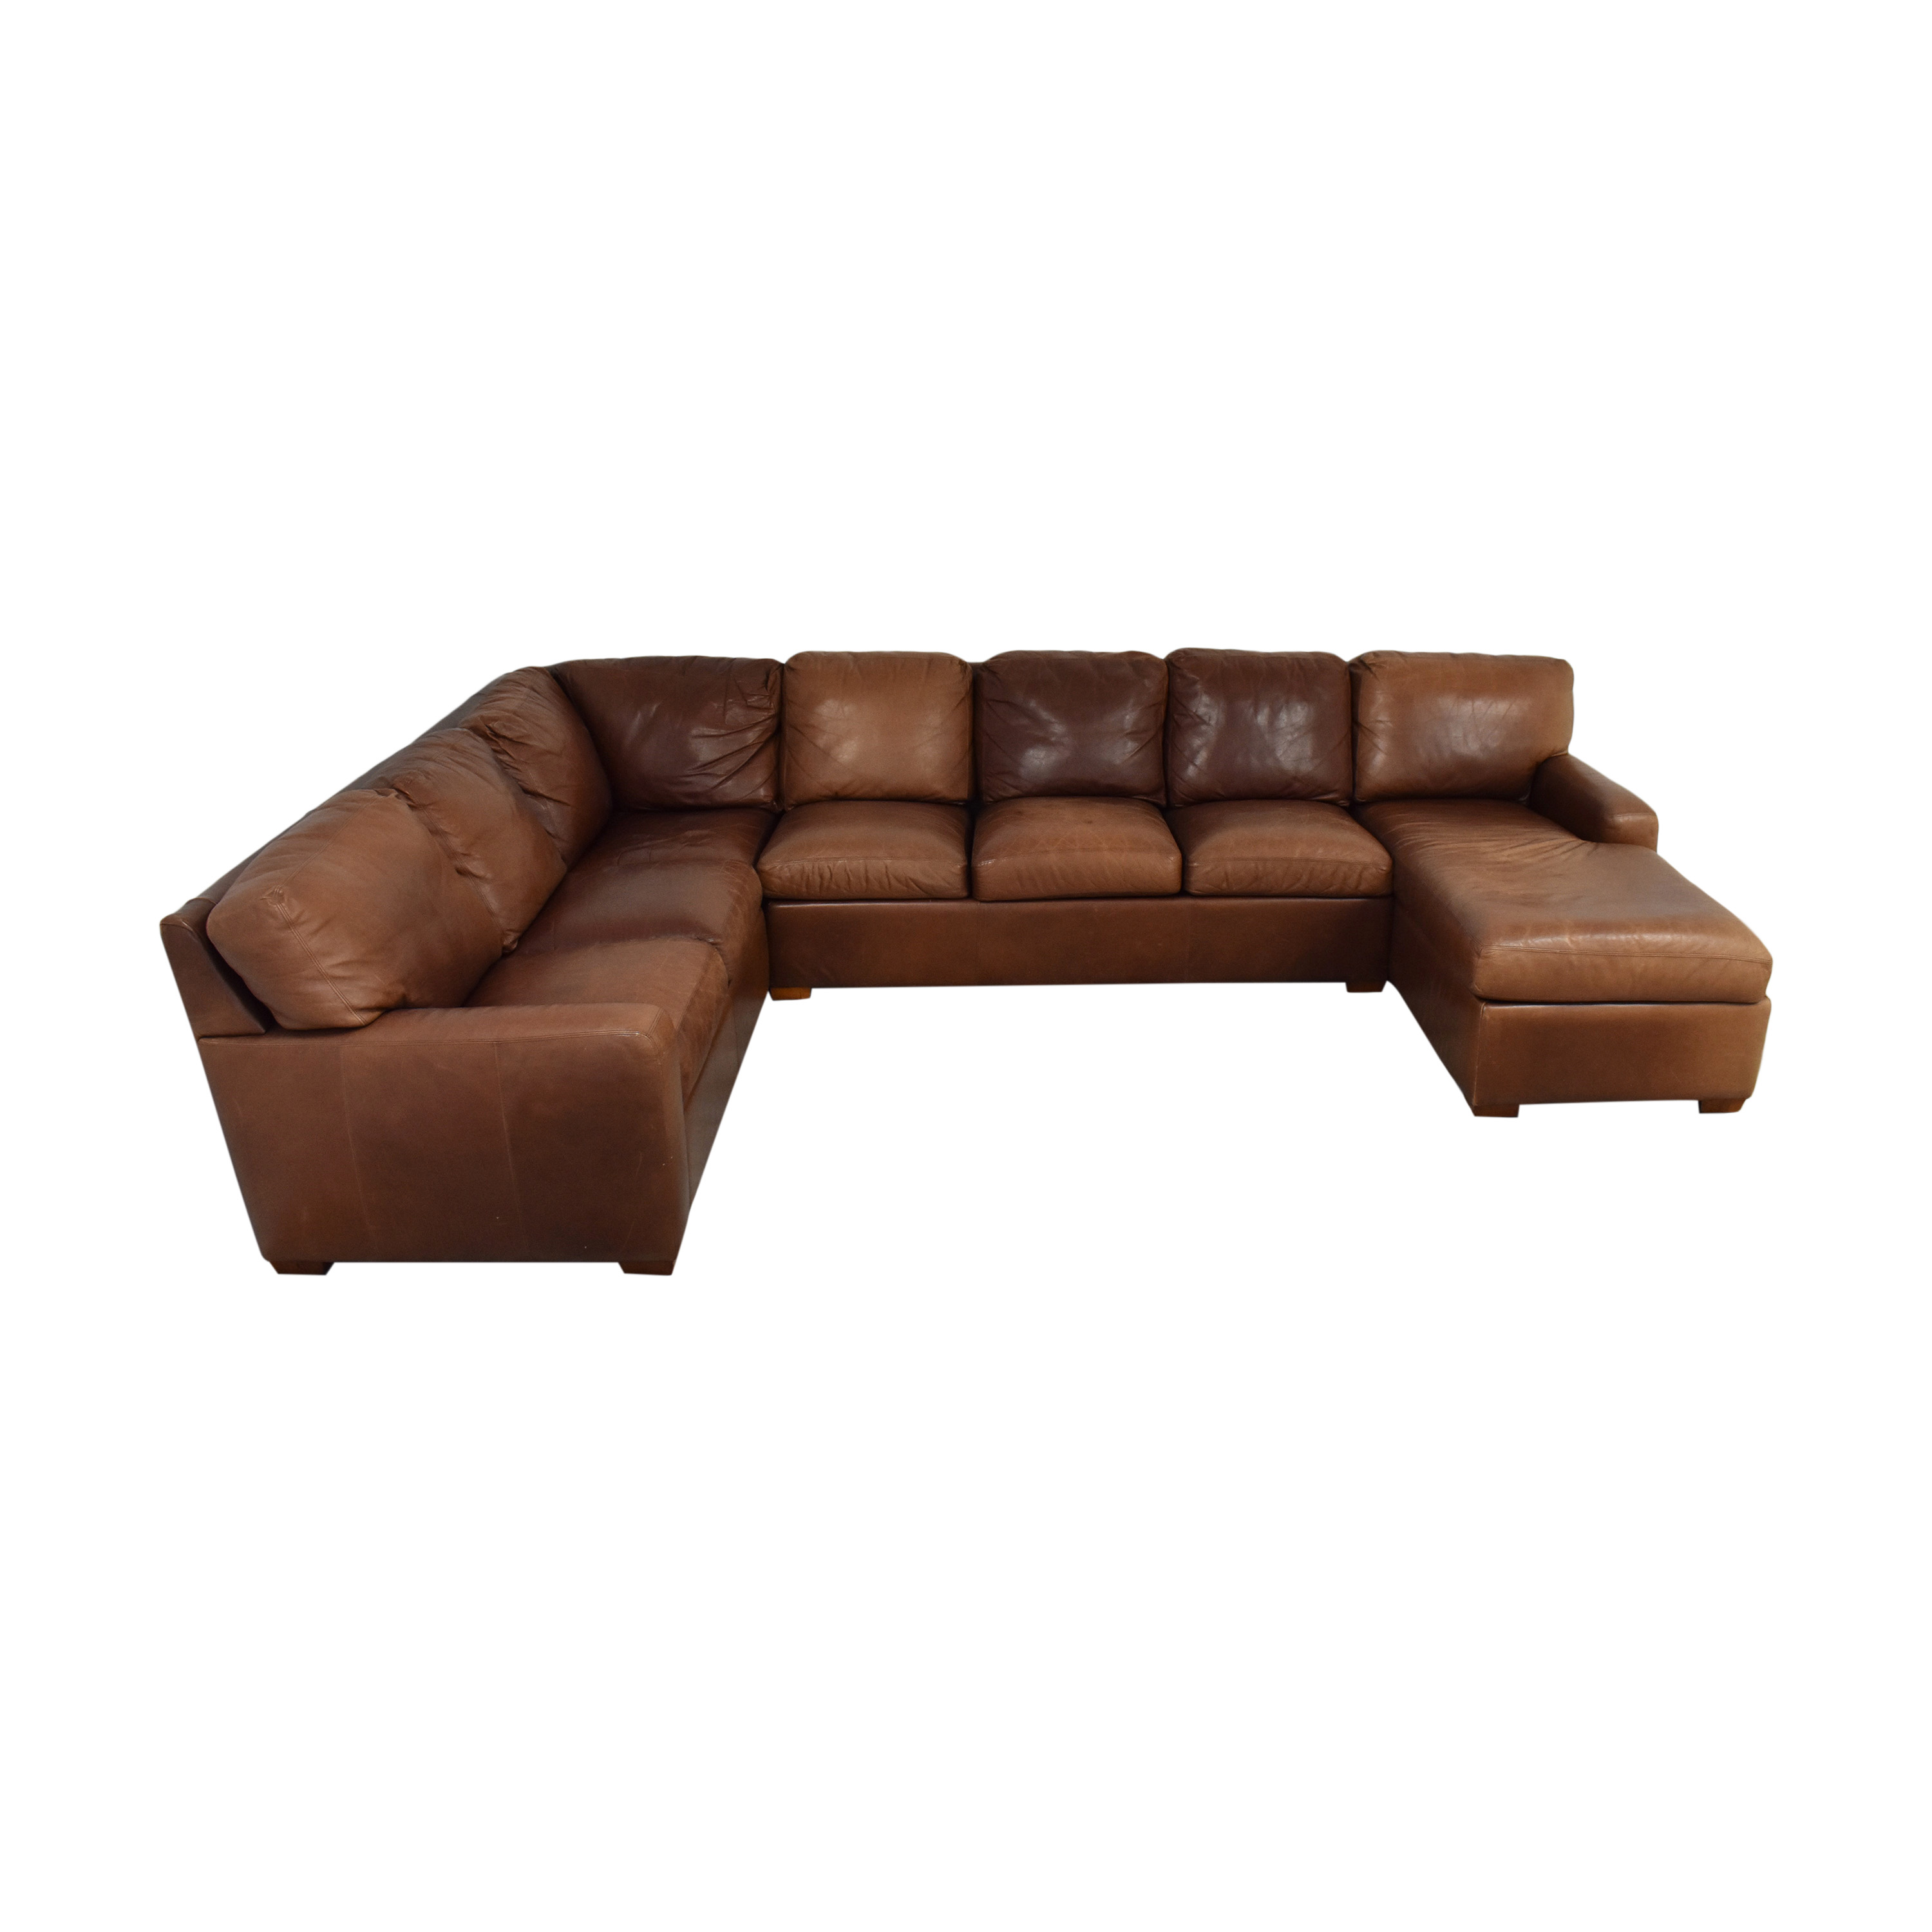 American Leather American Leather Danford Sectional Sofa dimensions